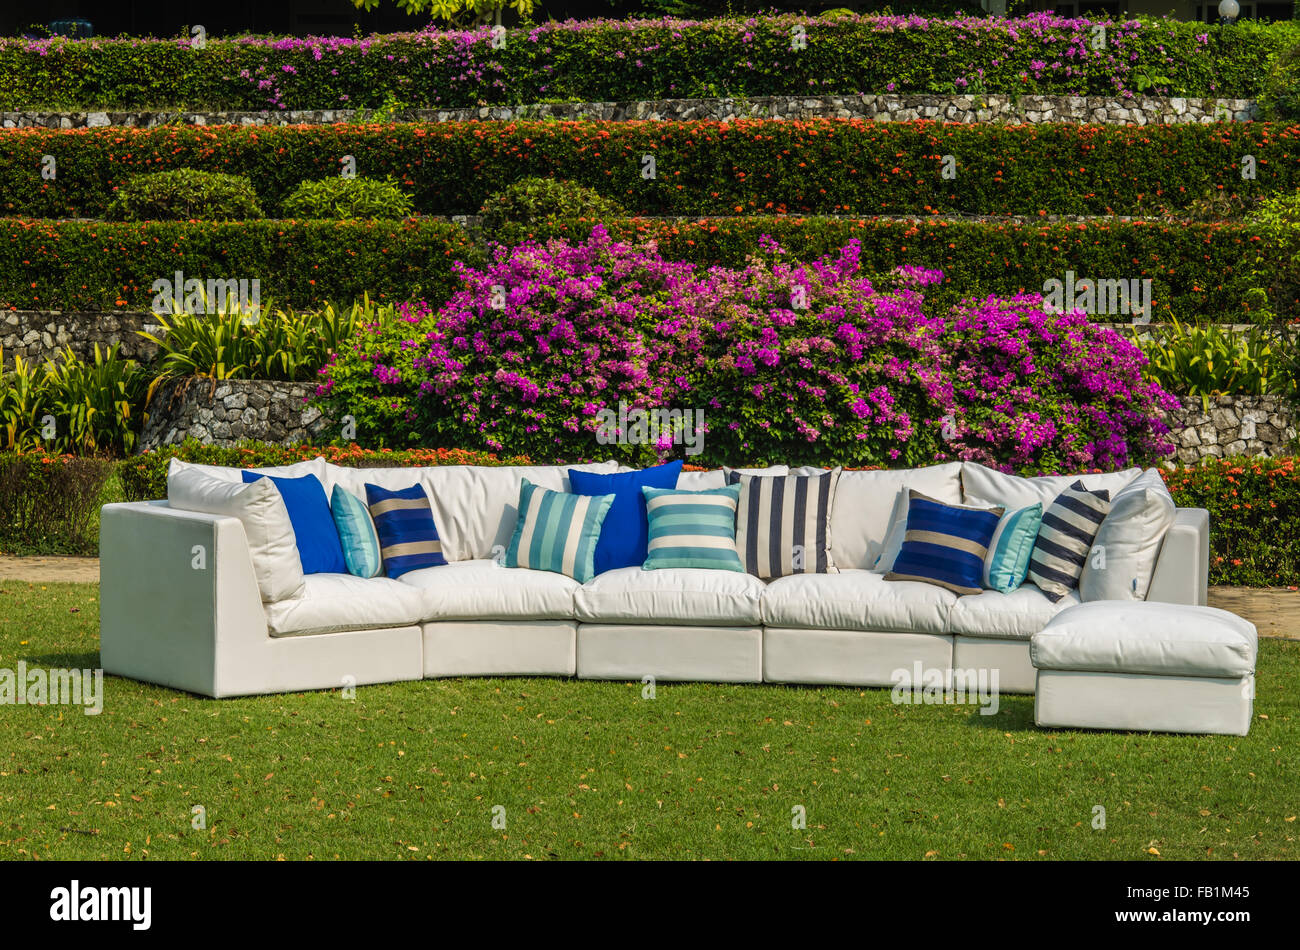 Outdoor furniture with cushions and pillows in the garden stock image